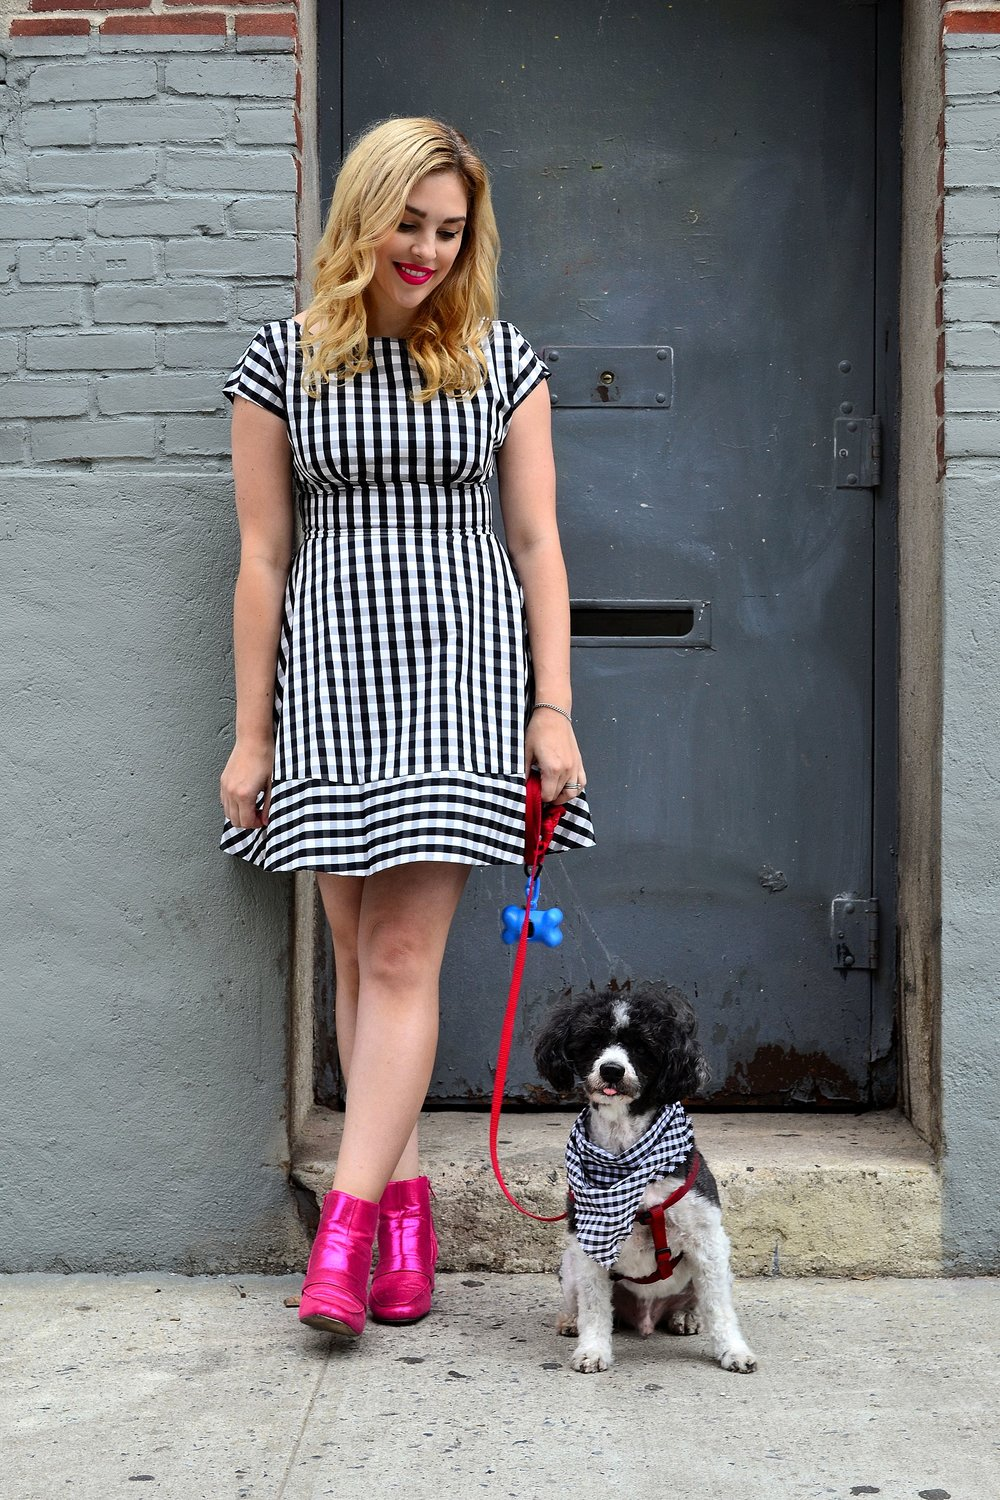 kate spade dress asos pink booties dog 5.JPG